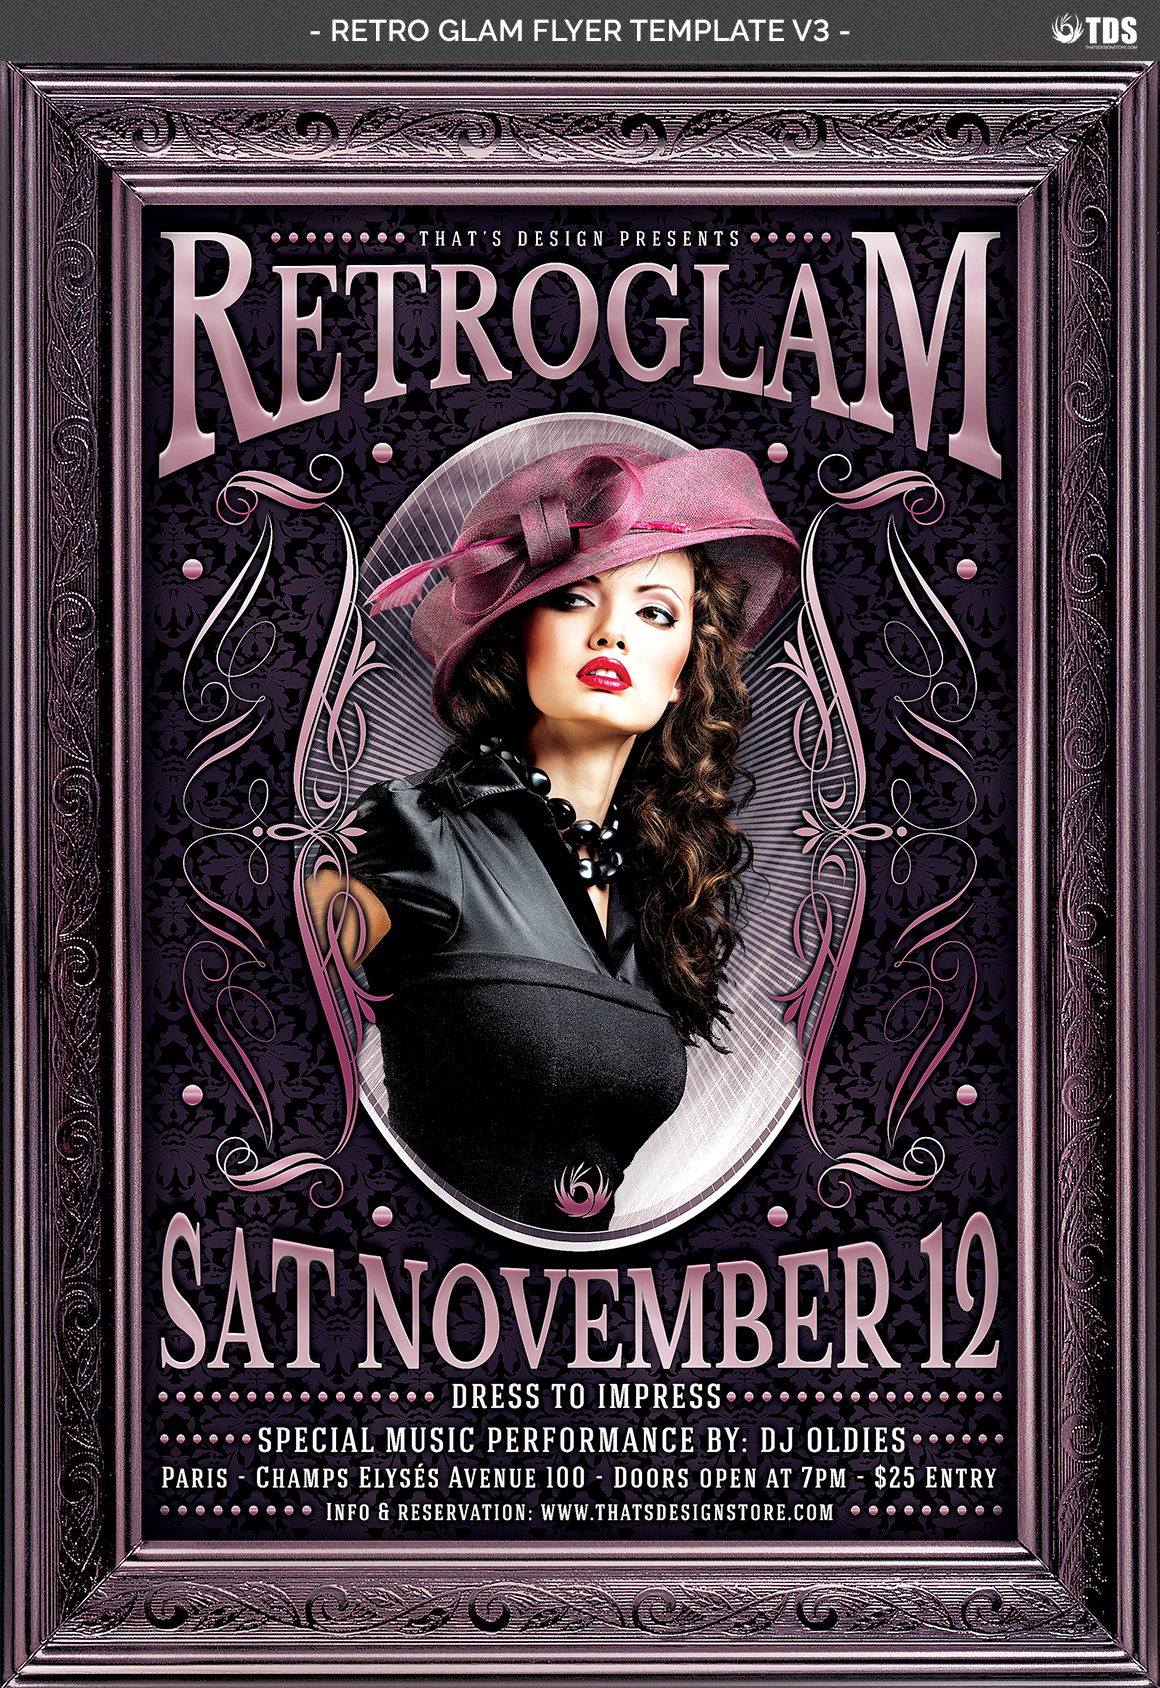 Retro Glam Flyer Template V3  example image 4